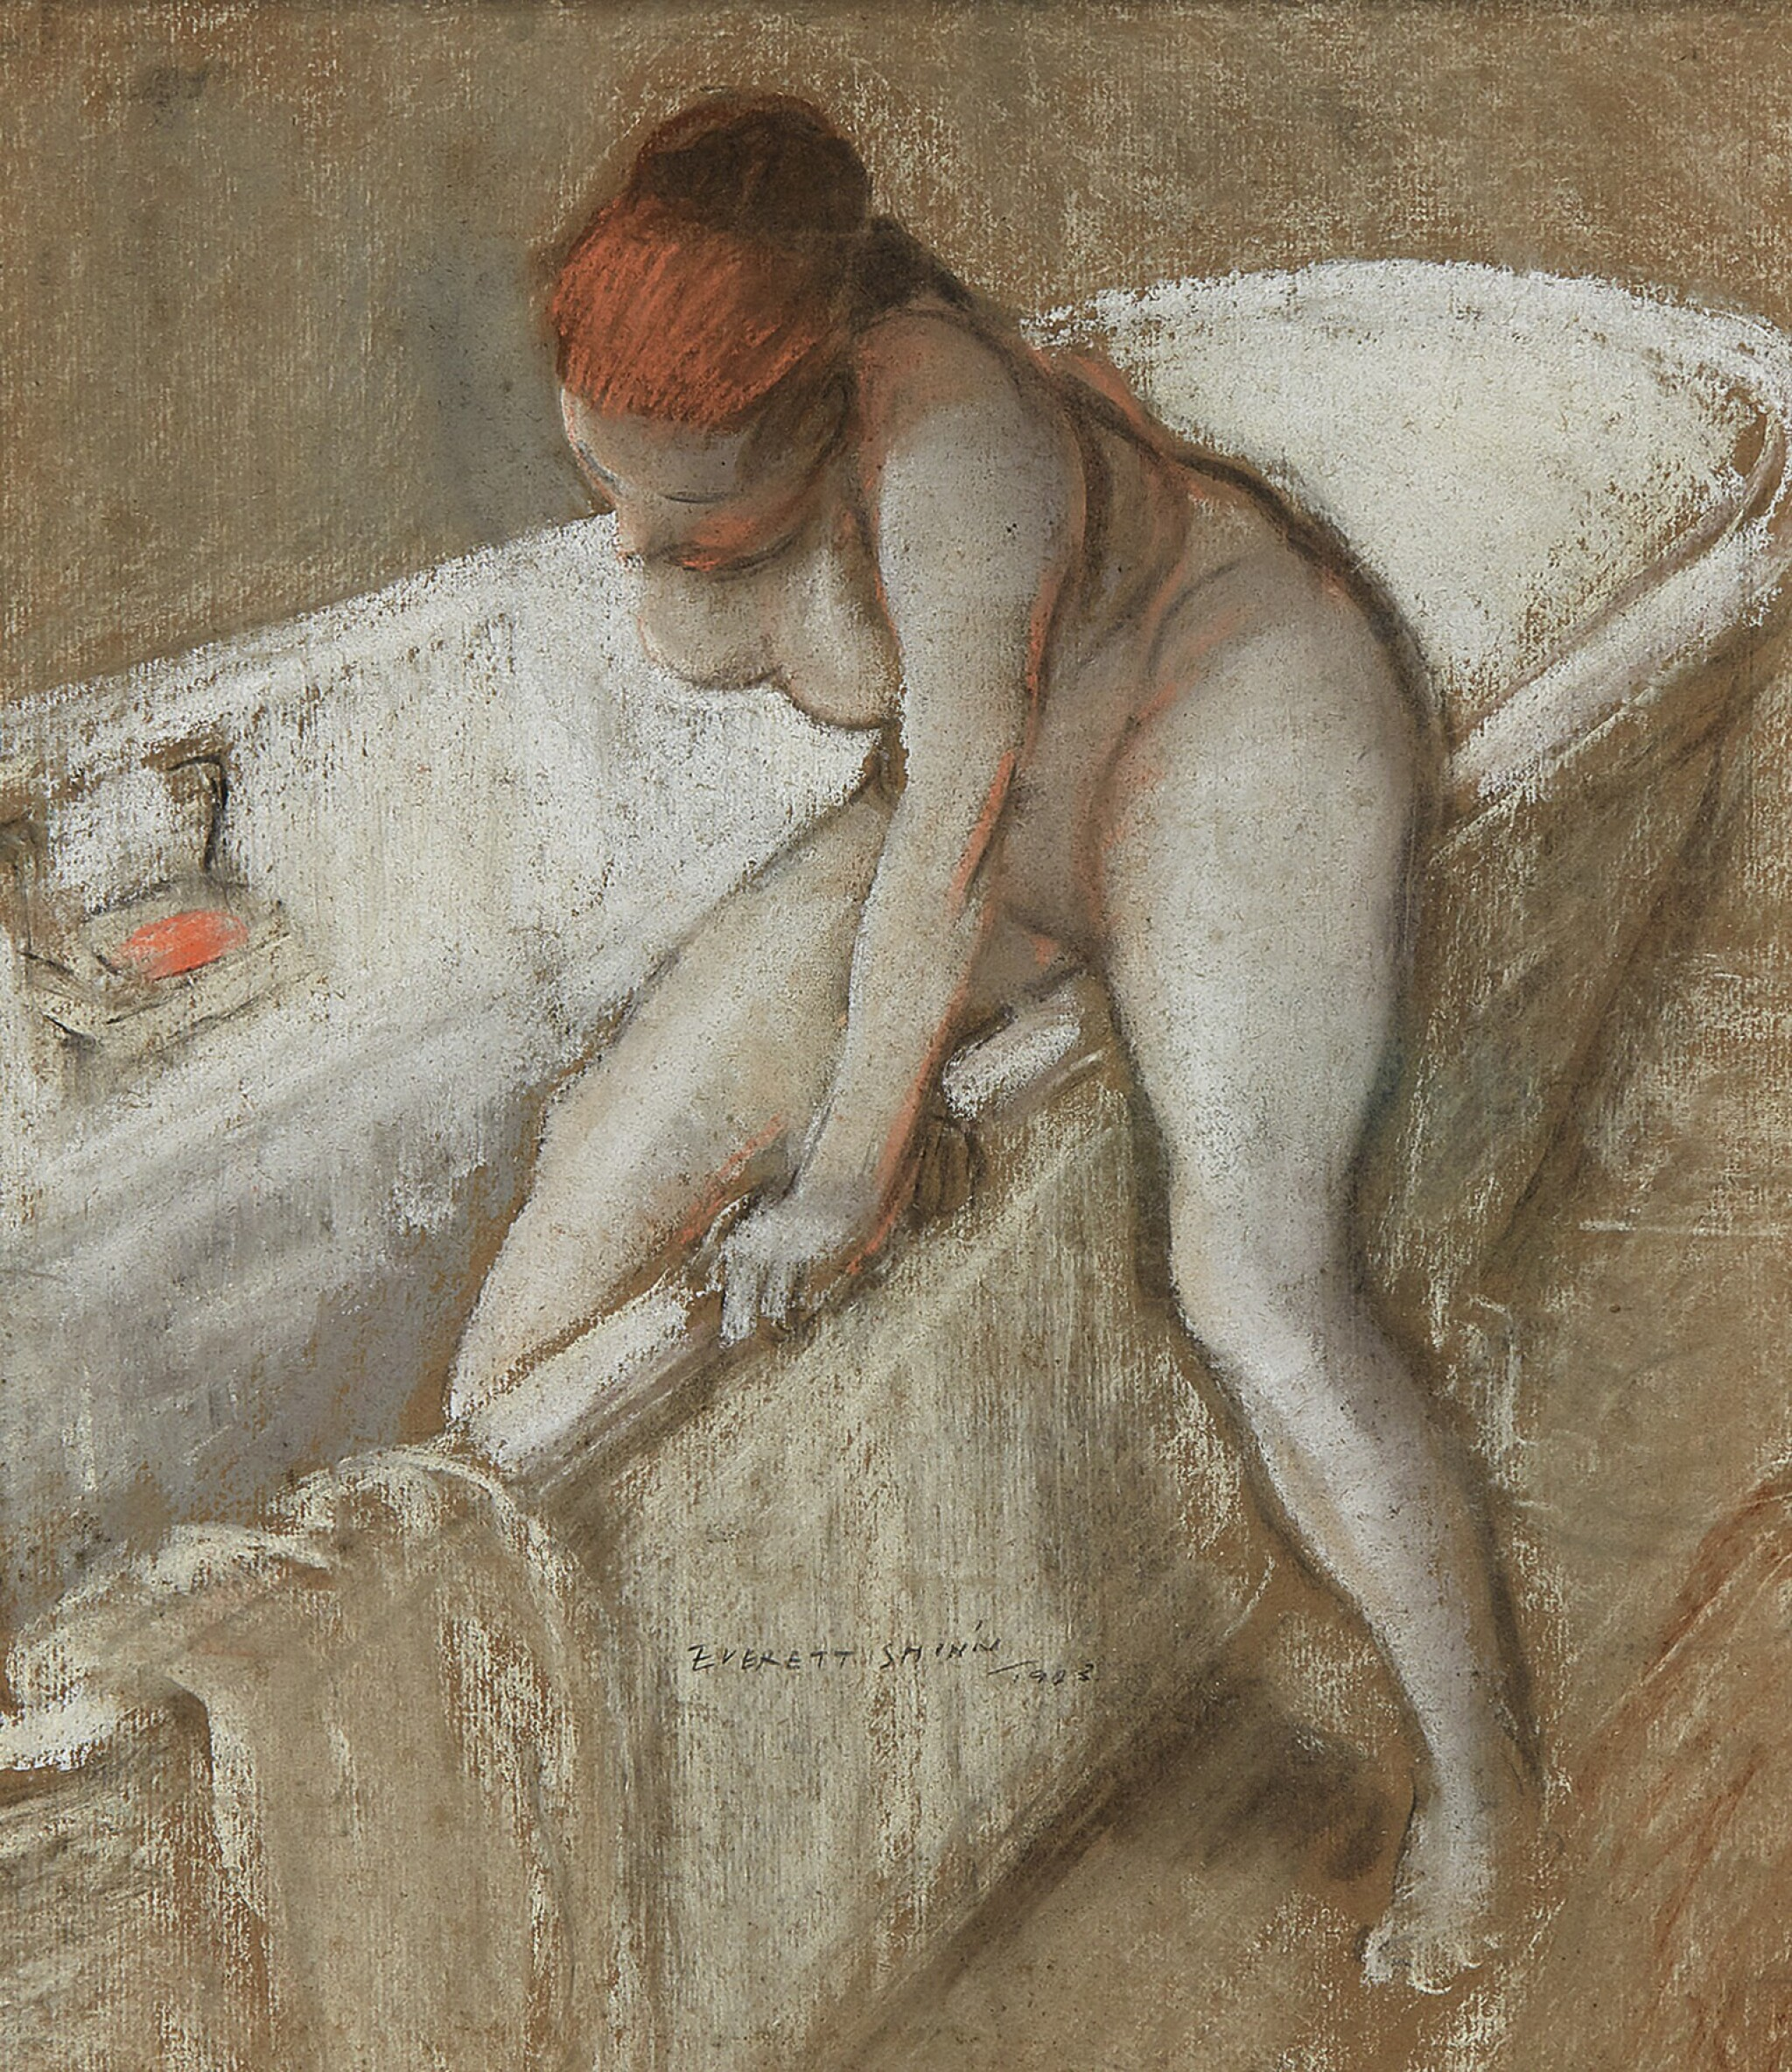 View 1 of Lot 15. Girl in Bathtub.